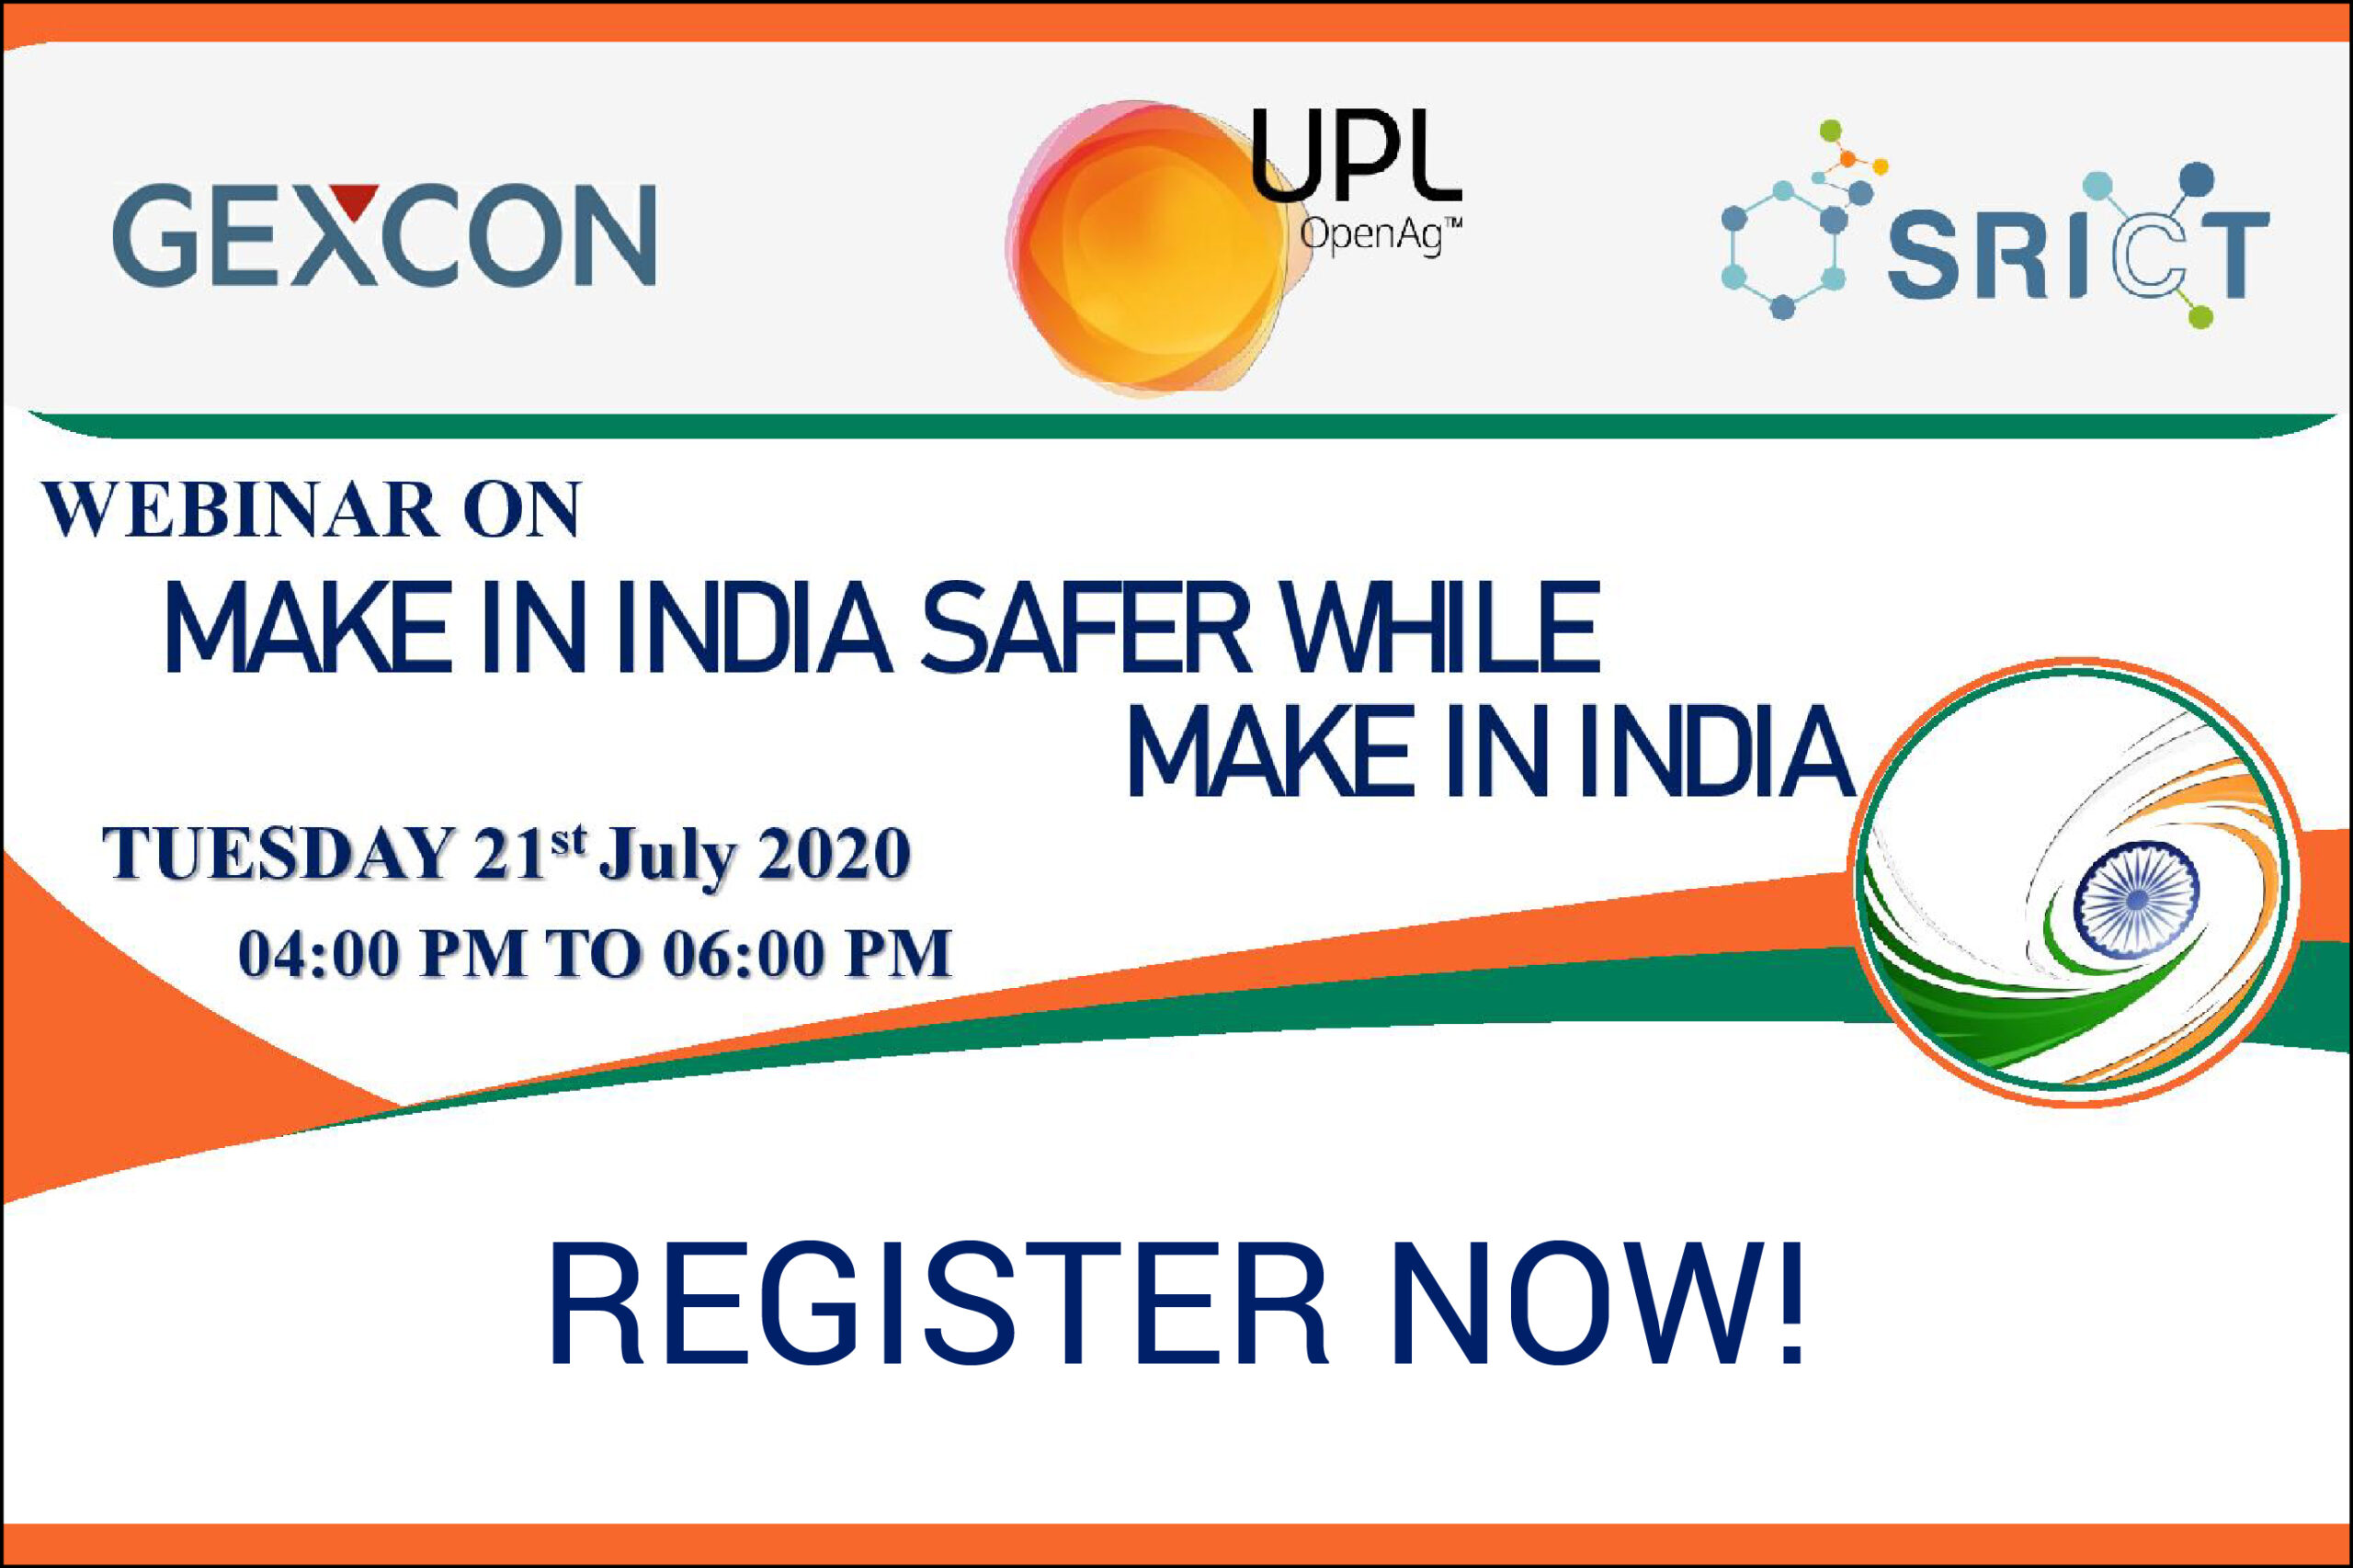 Make in India Safer While Make in India Webinar by Gexcon and UPL